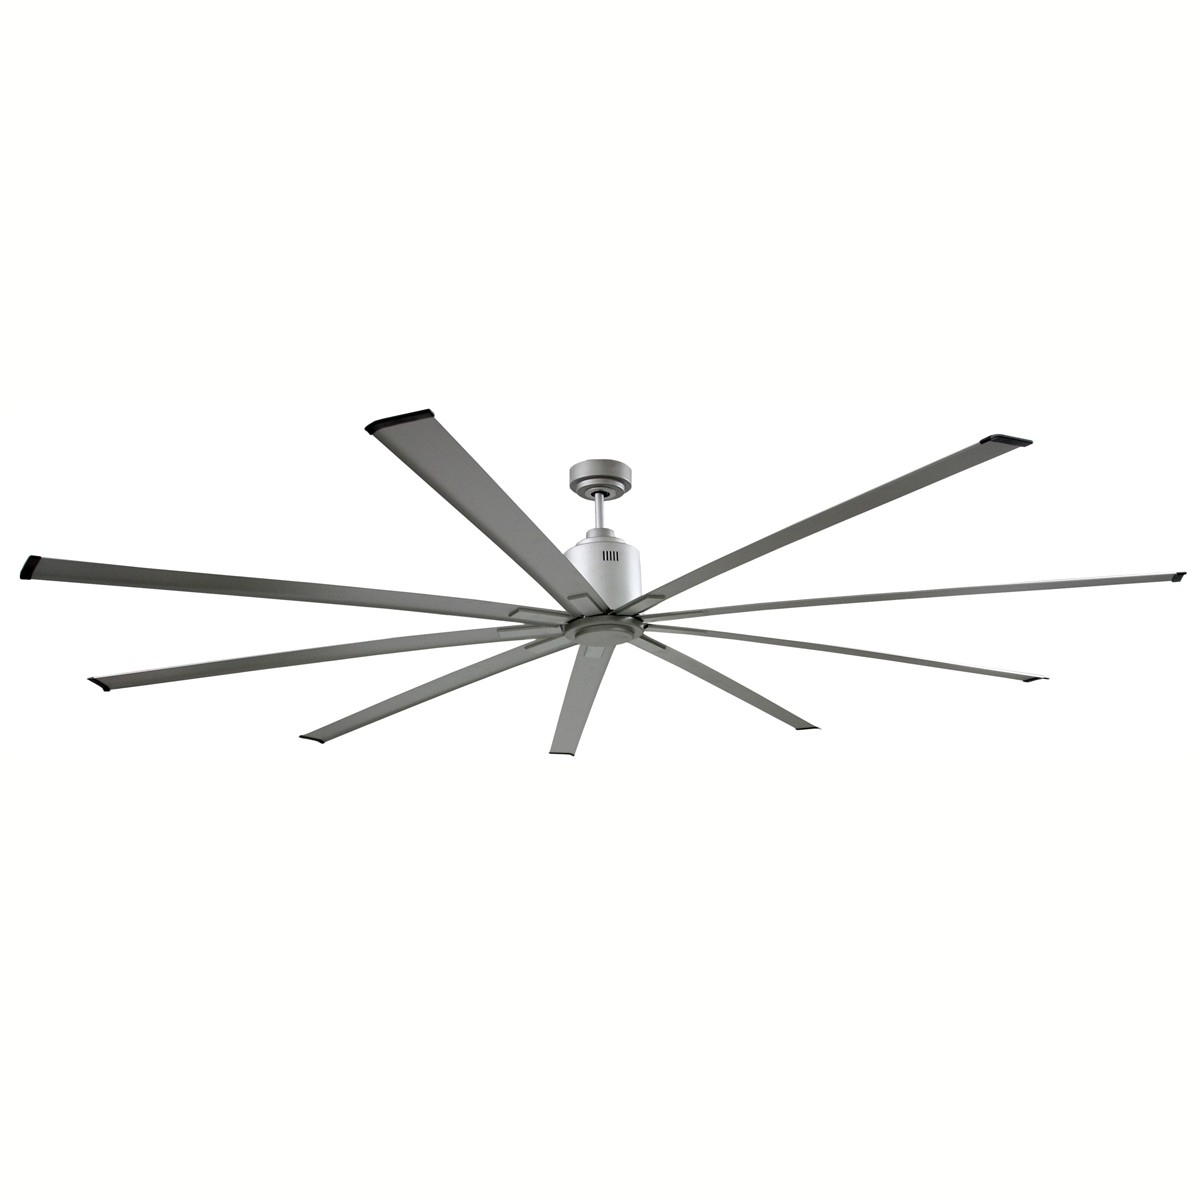 72 Inch Outdoor Ceiling Fans Intended For Trendy 72 Inch Indoor Industrial Ceiling Fan (View 2 of 20)